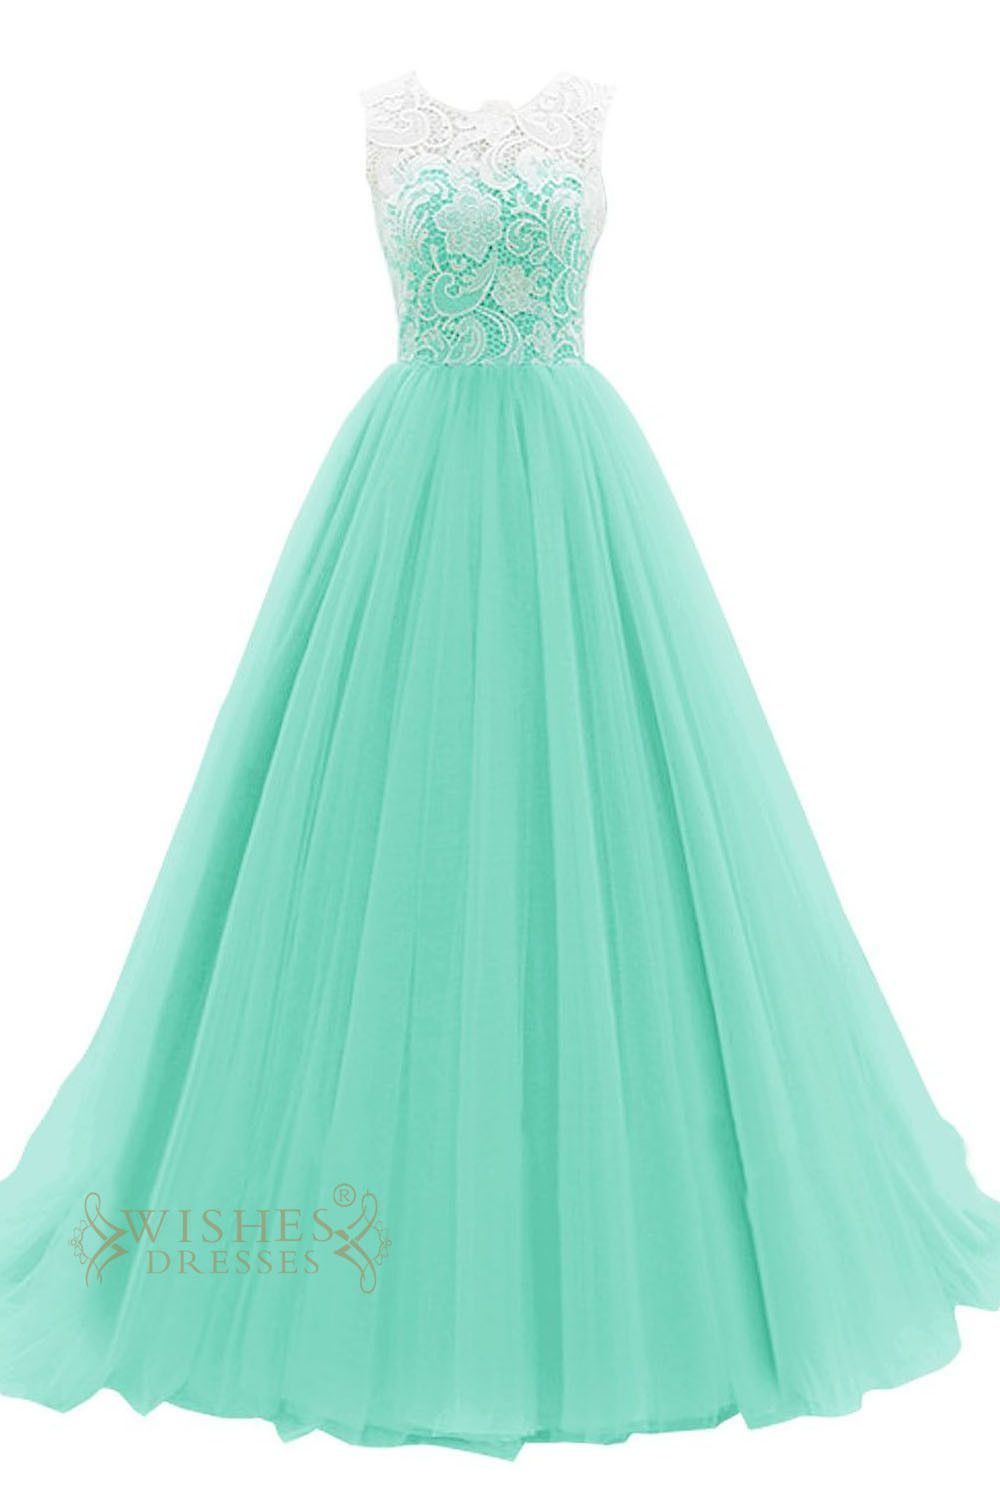 Hotsale turquoise organza formal dress with white lace top prom